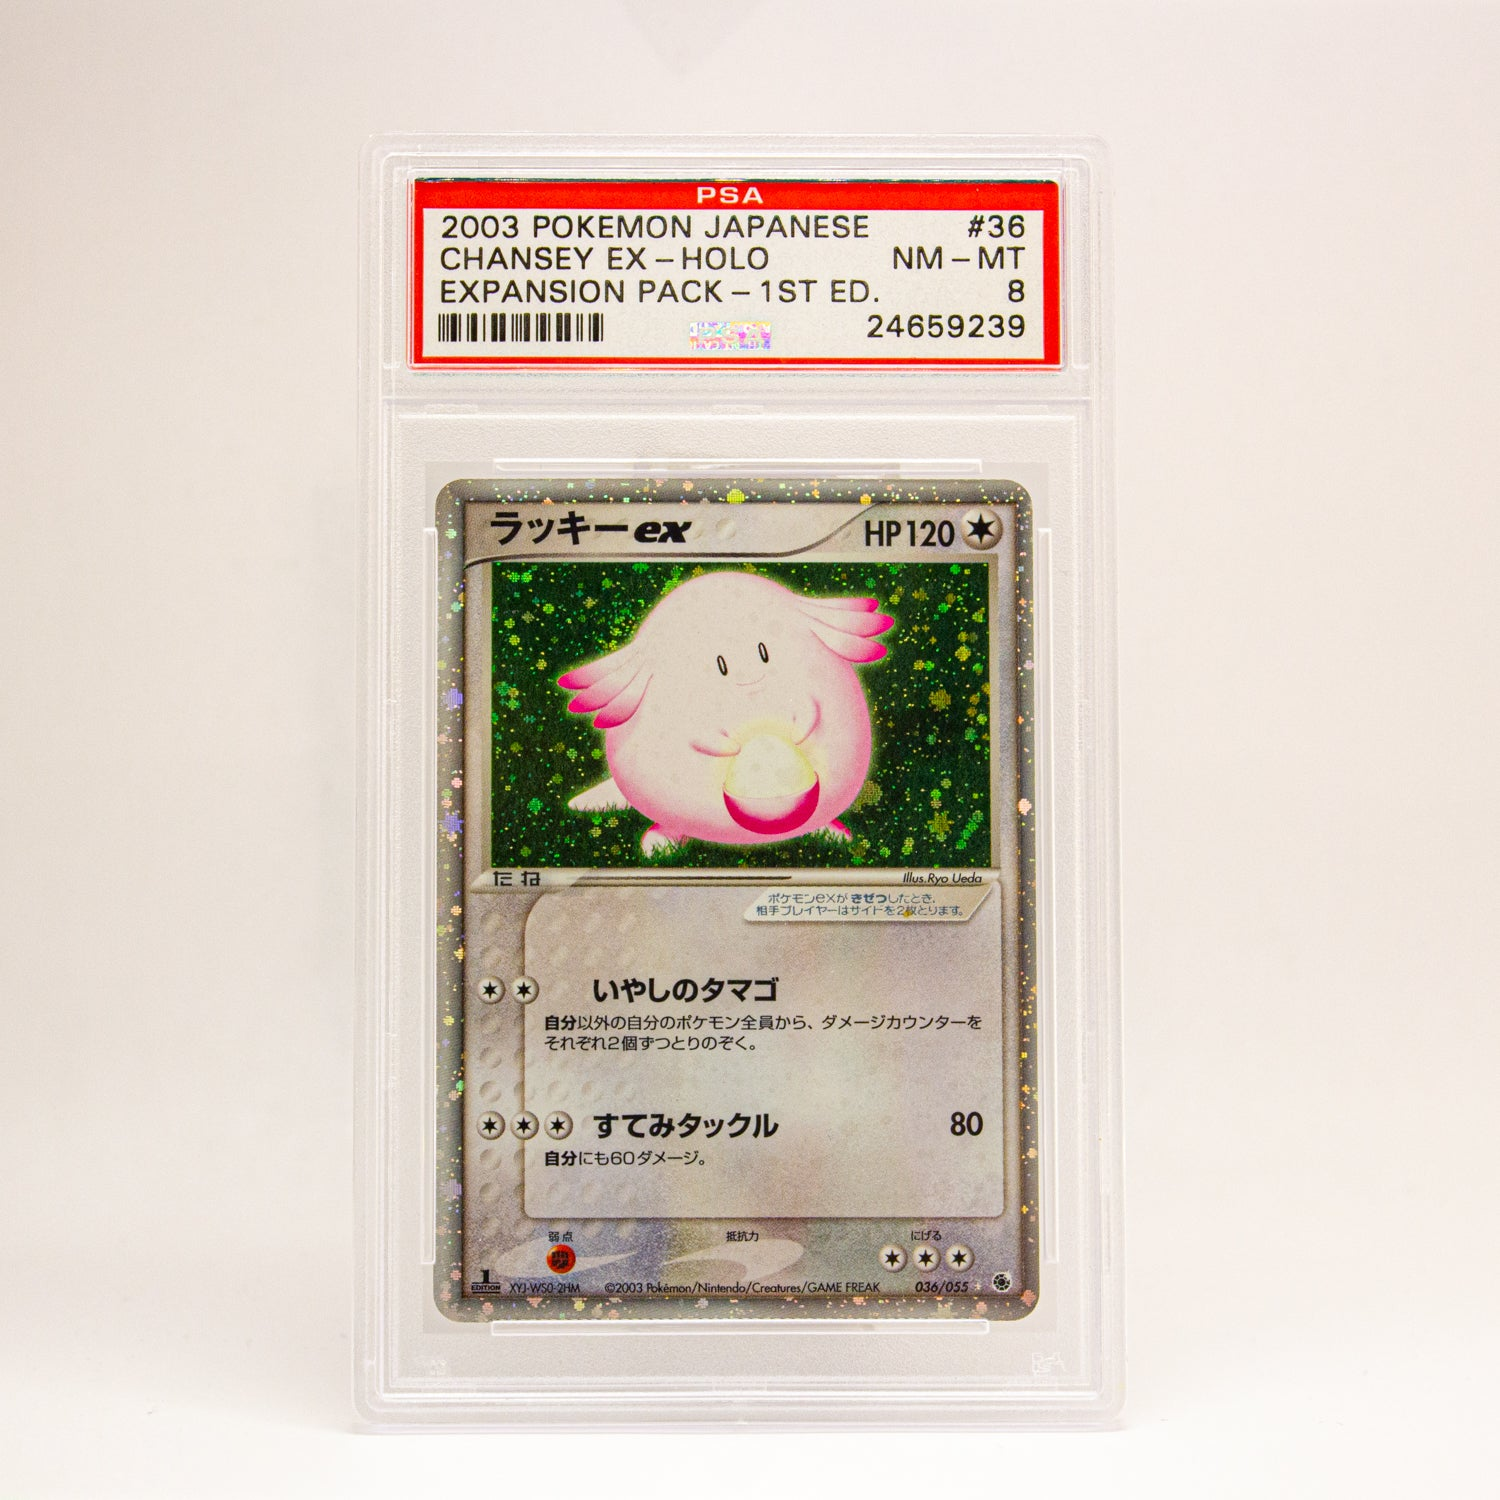 2003 POKEMON JAP. CHANSEY EX EXP. PK 1ST ED - POP KULCHA COLLECT - Graded cards, sealed products, toys and video games